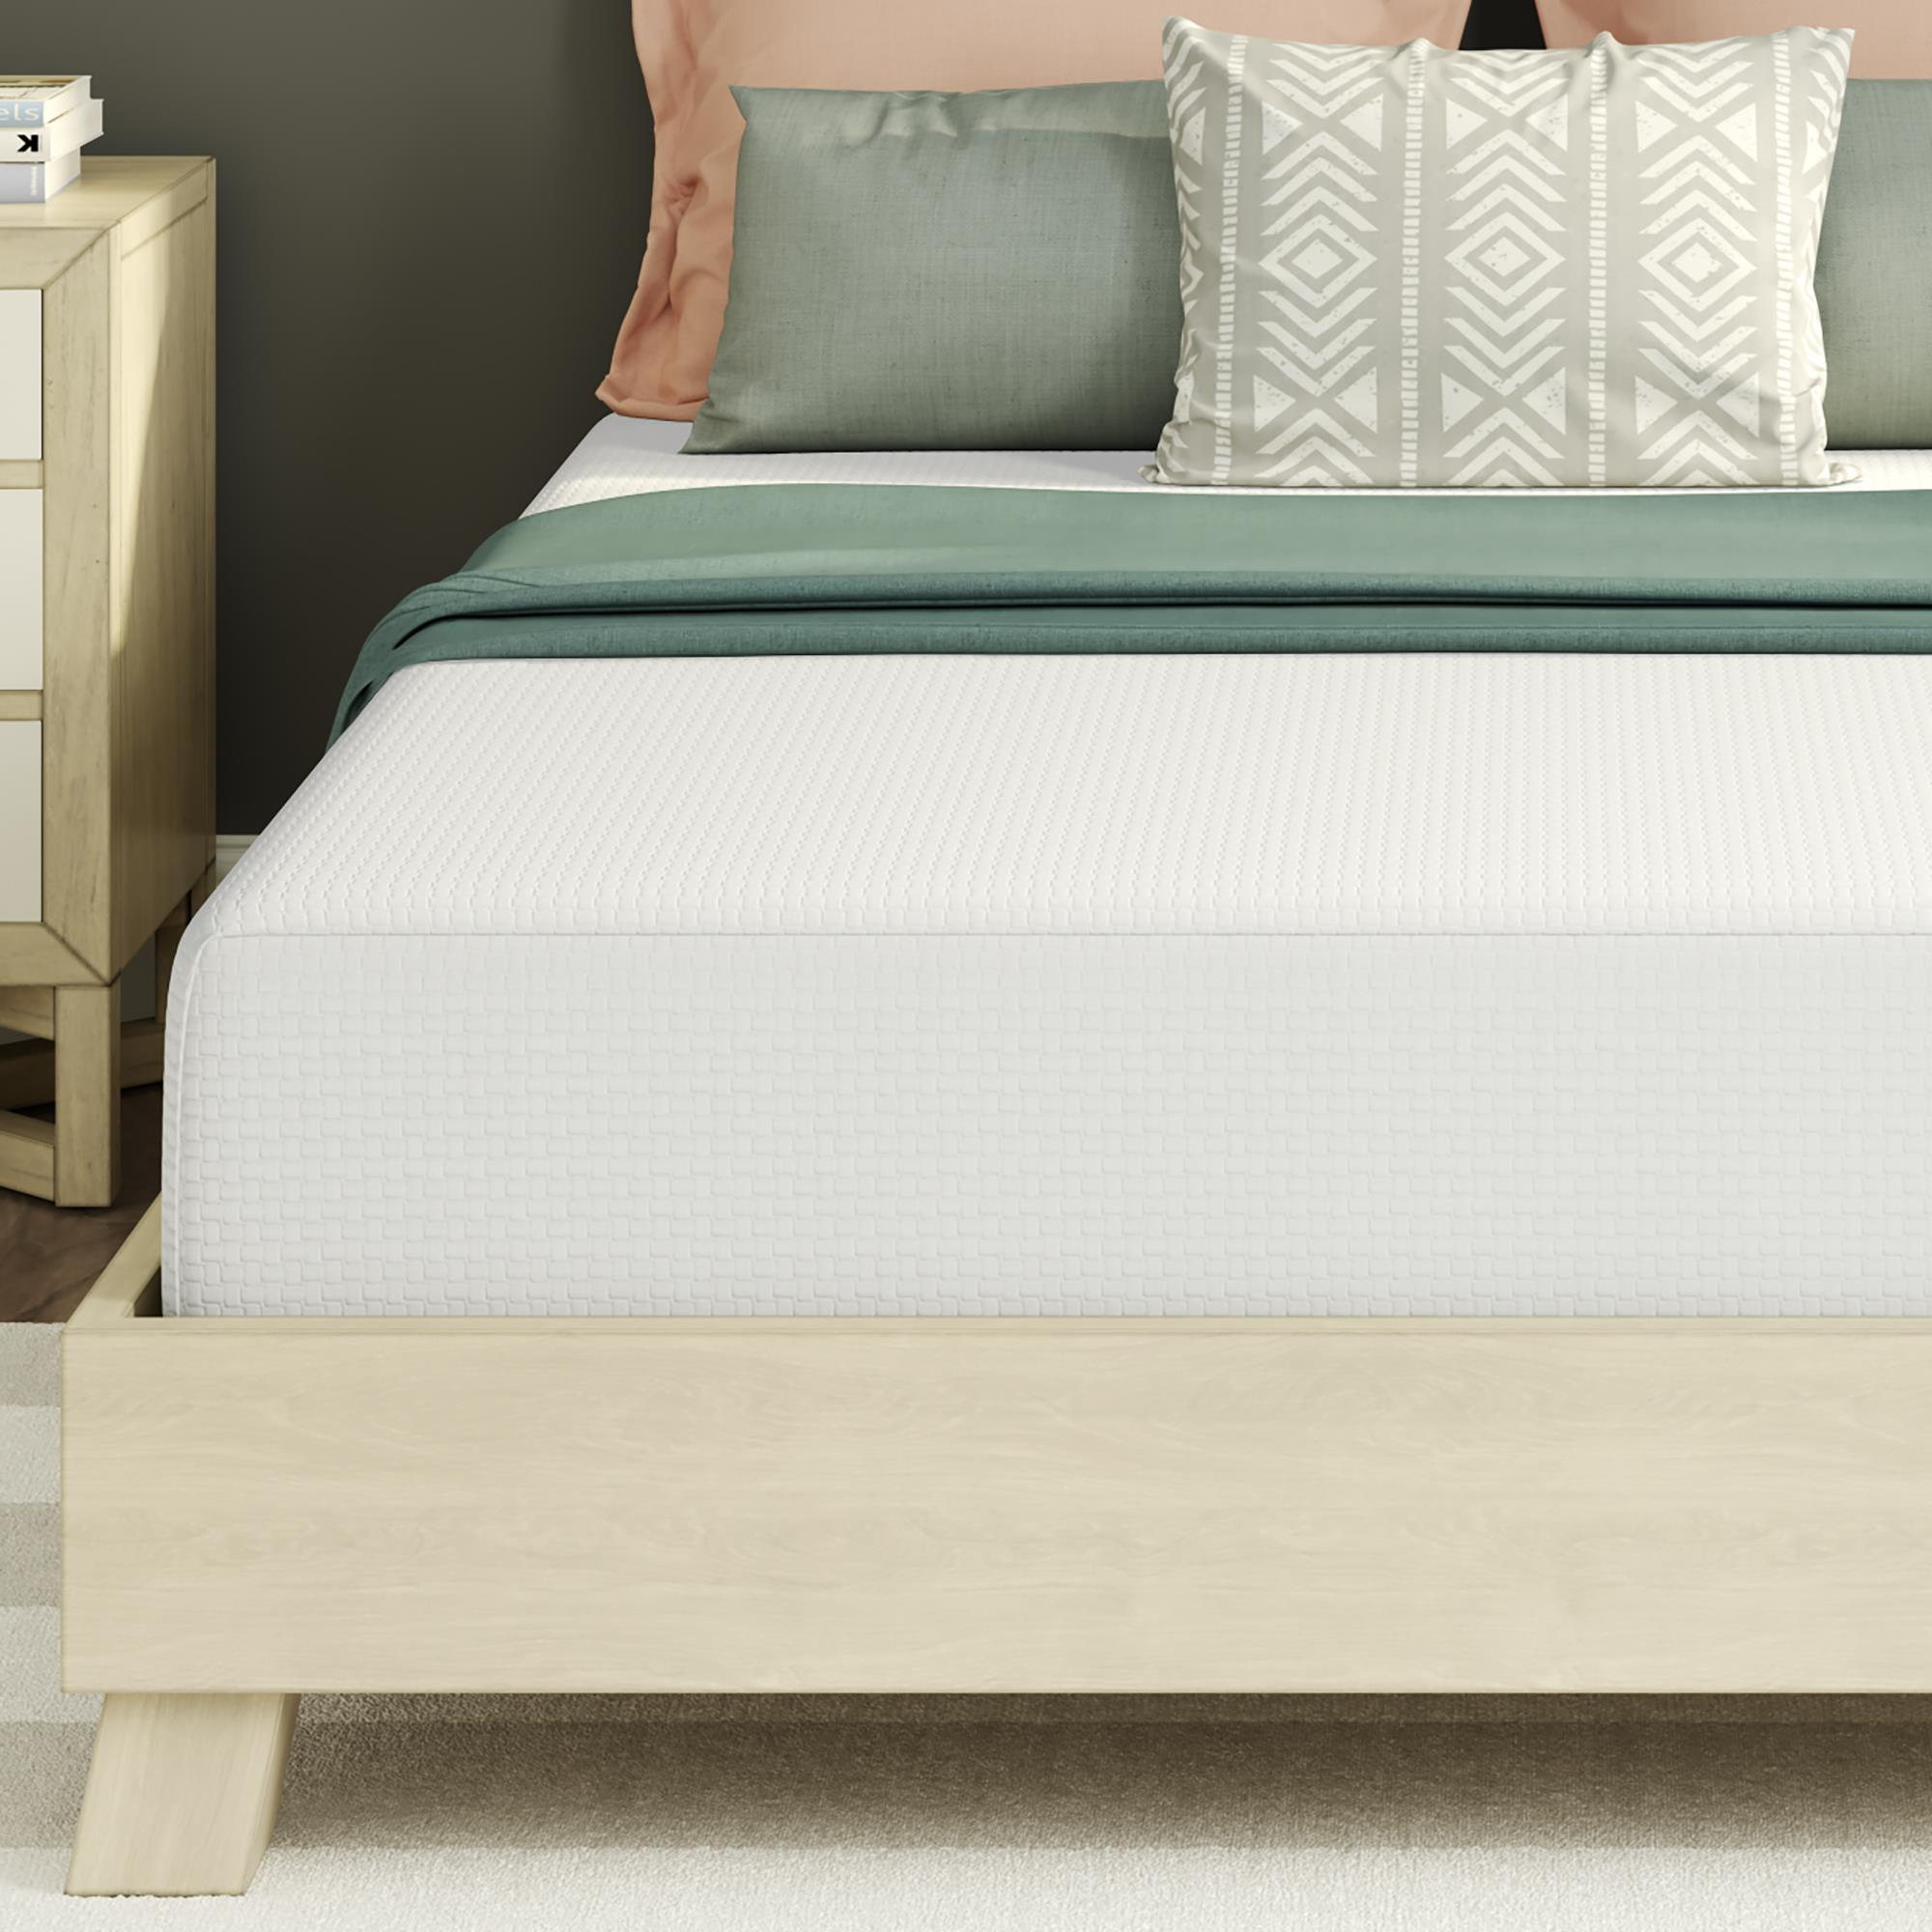 "Signature Sleep Gold CertiPUR-US Inspire 12"" Memory Foam Mattress, Multiple Sizes"